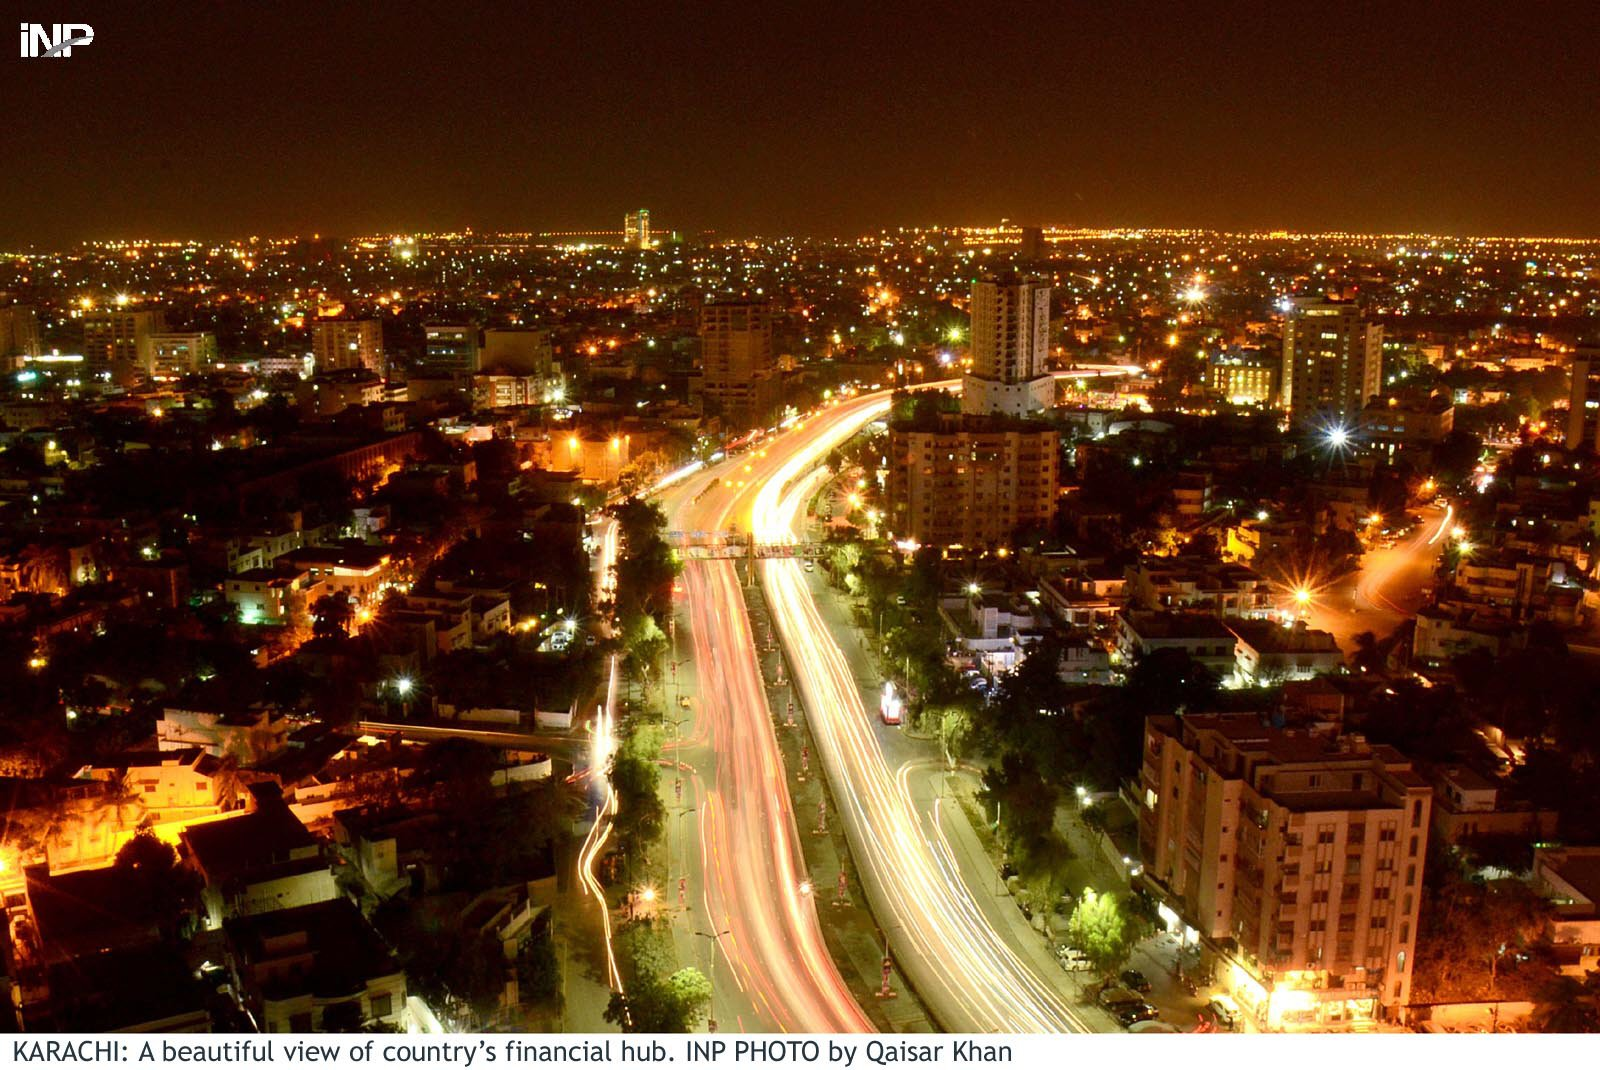 khi_city_view_inp-2-4-2-2-2-2-2-2-2-2-2-2-2-2-2-2-2